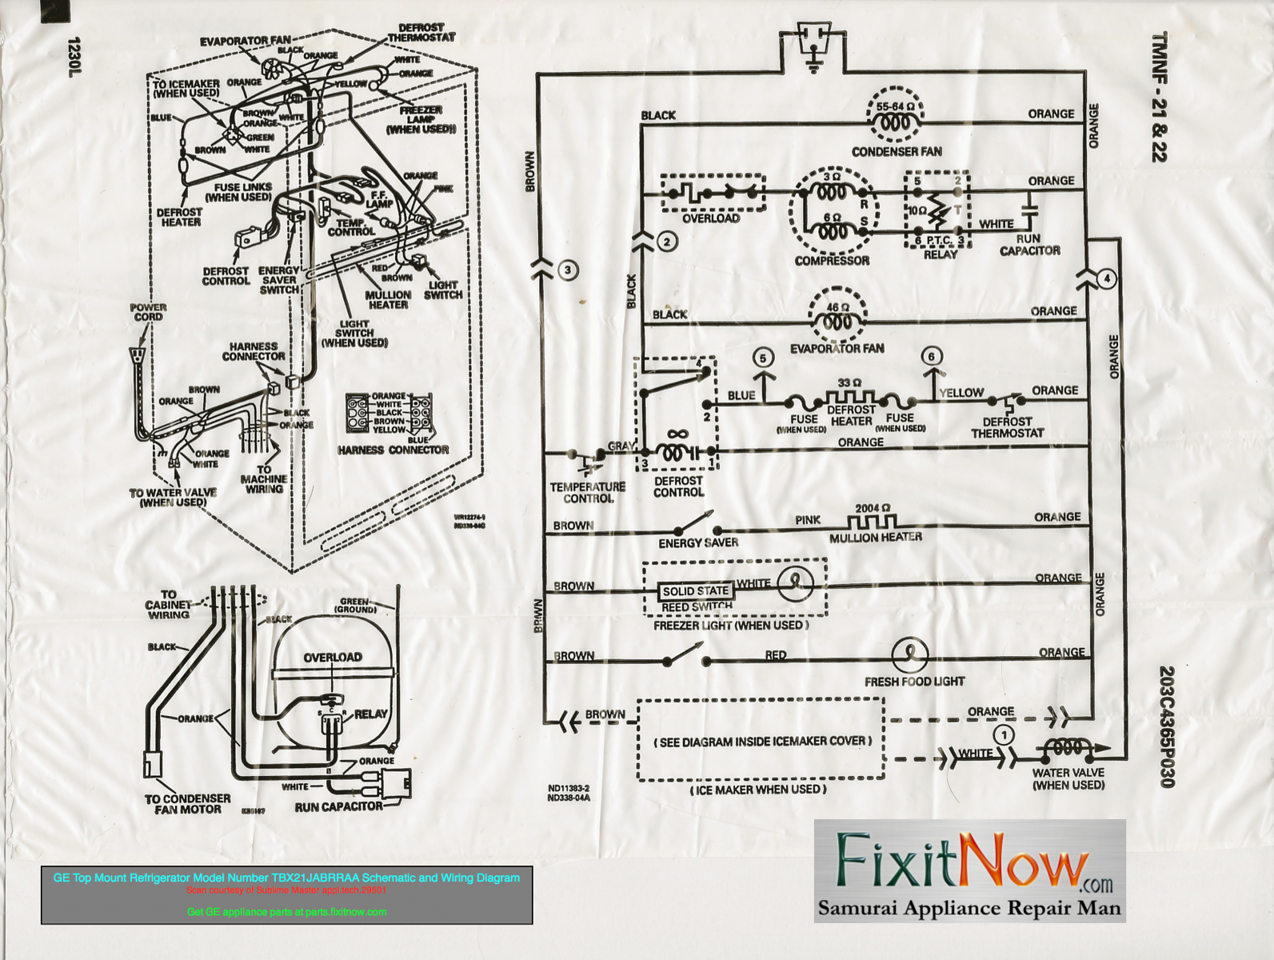 4904374061_e8eb3df6c6_o X2 wiring diagrams and schematics appliantology ge dryer wire diagram at bayanpartner.co